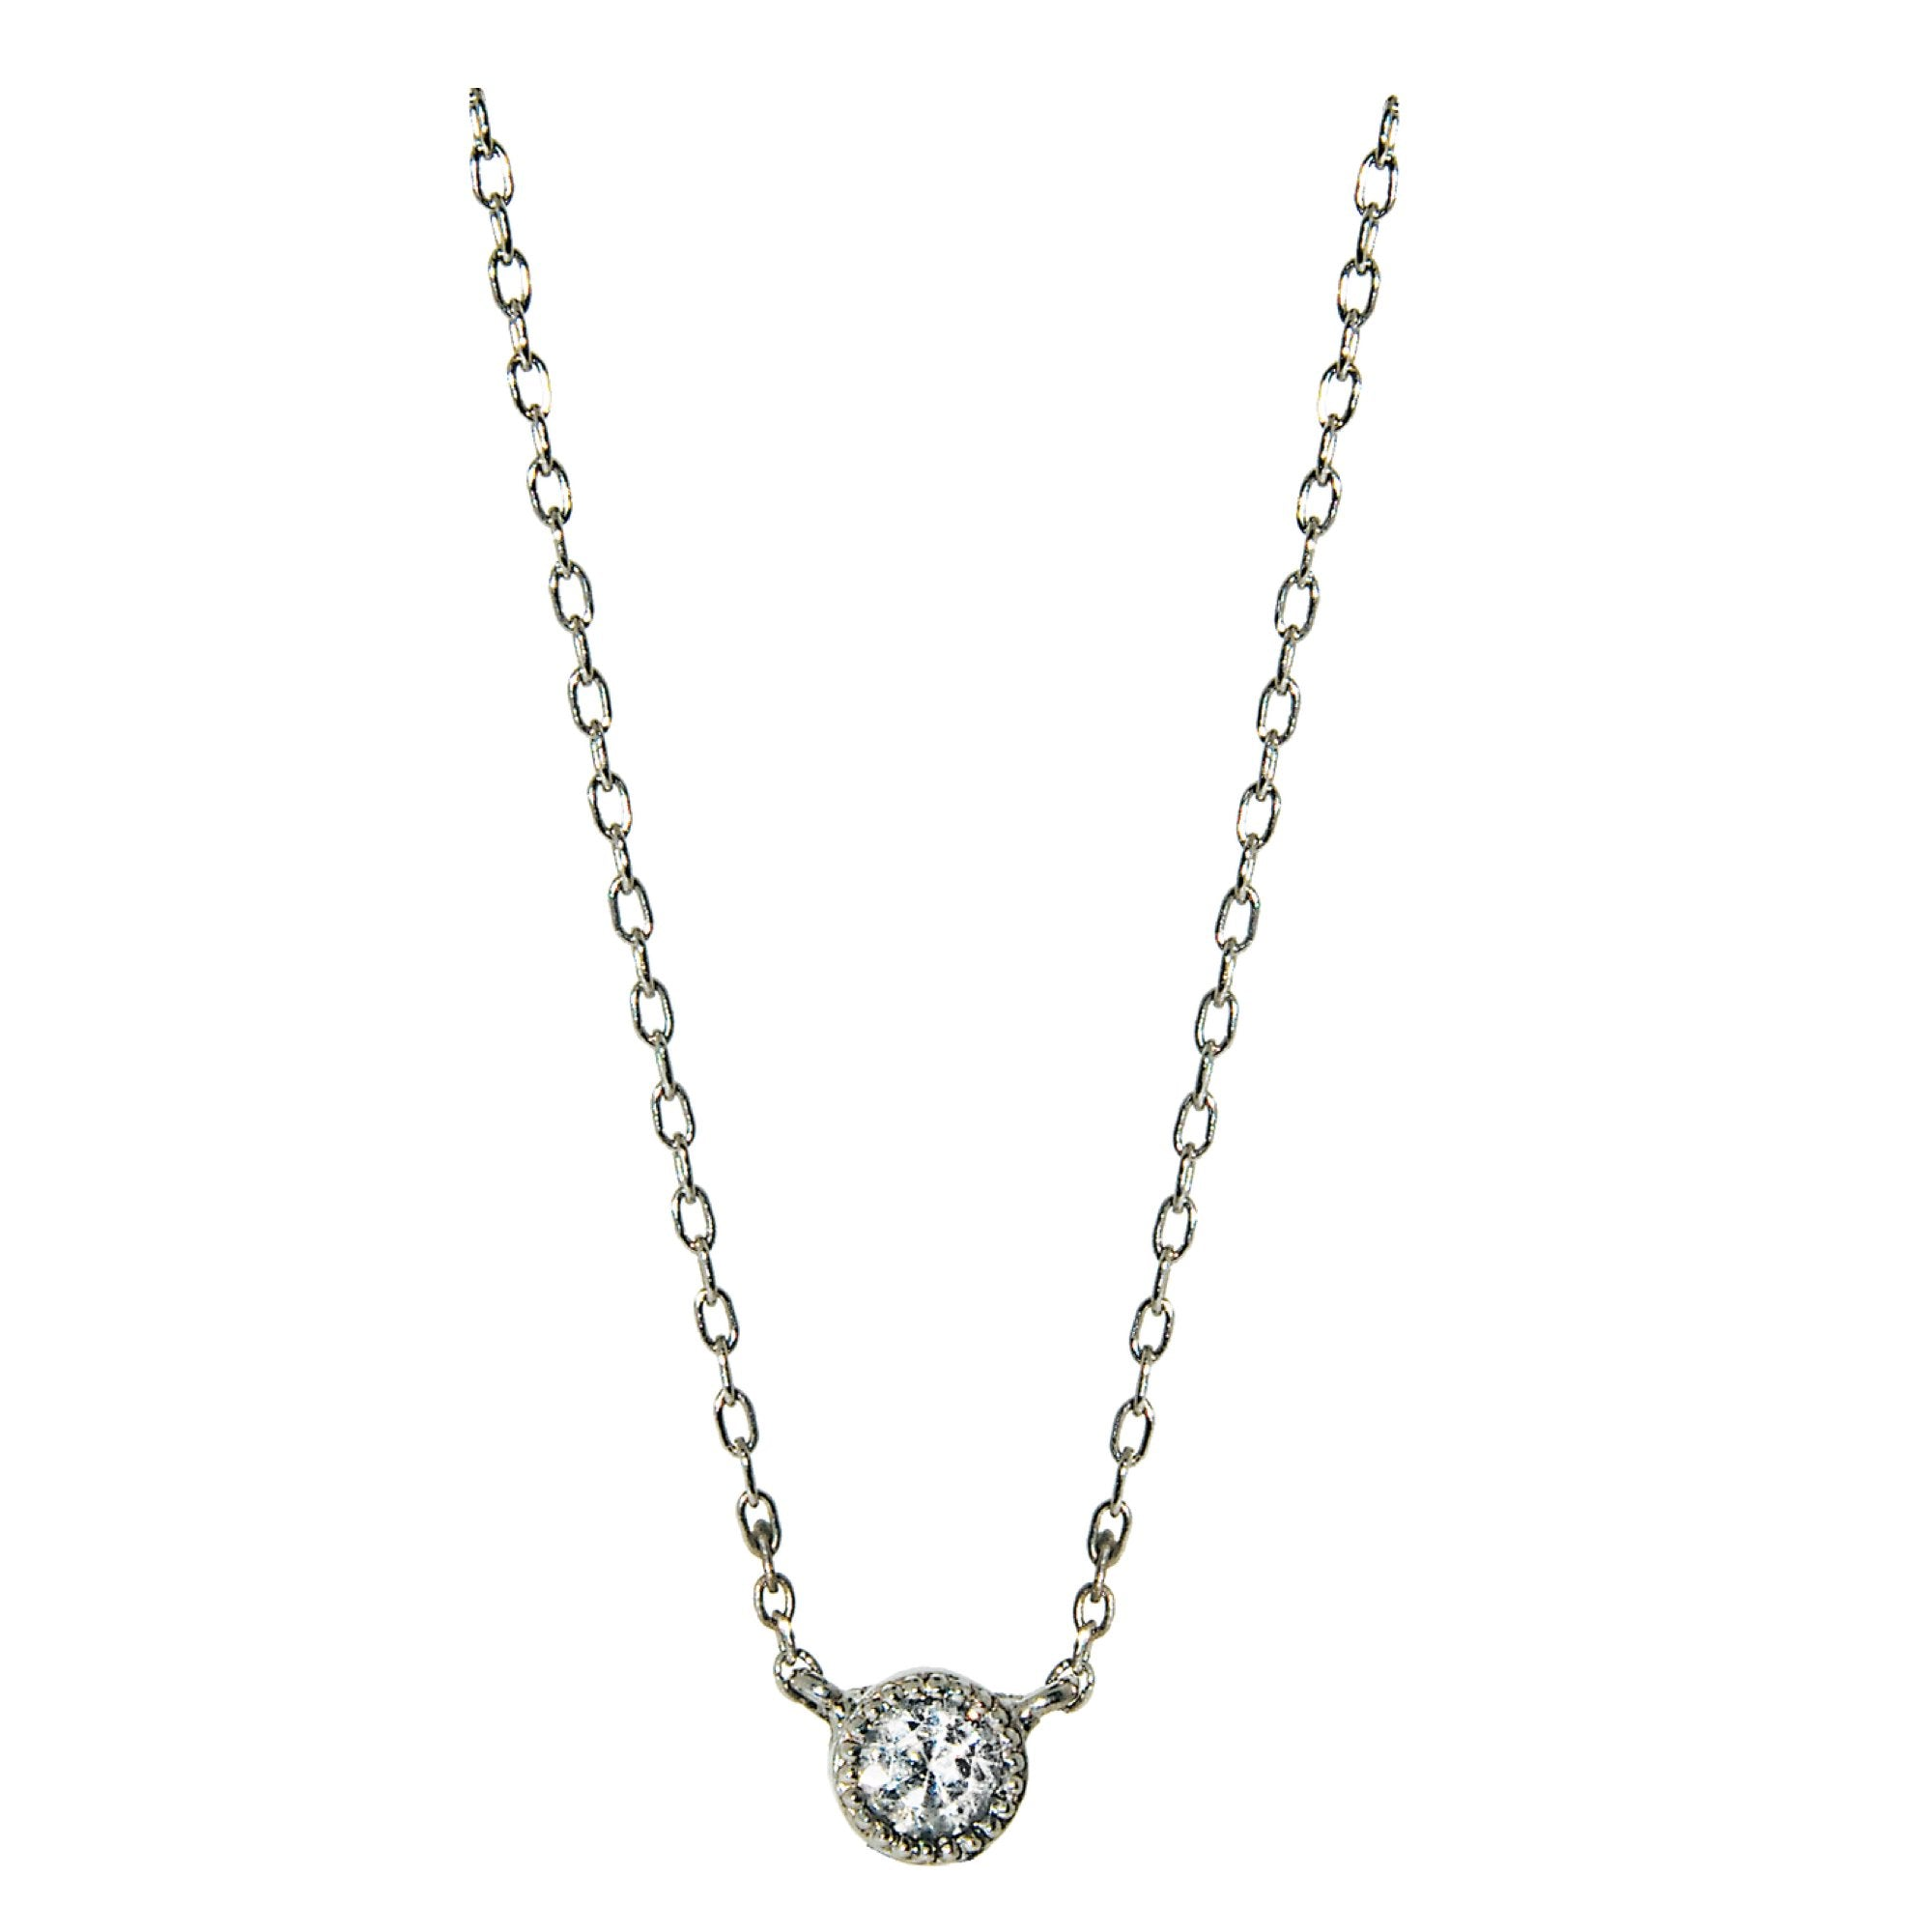 pl necklace bail dsc split solitaire diamond ct ways products